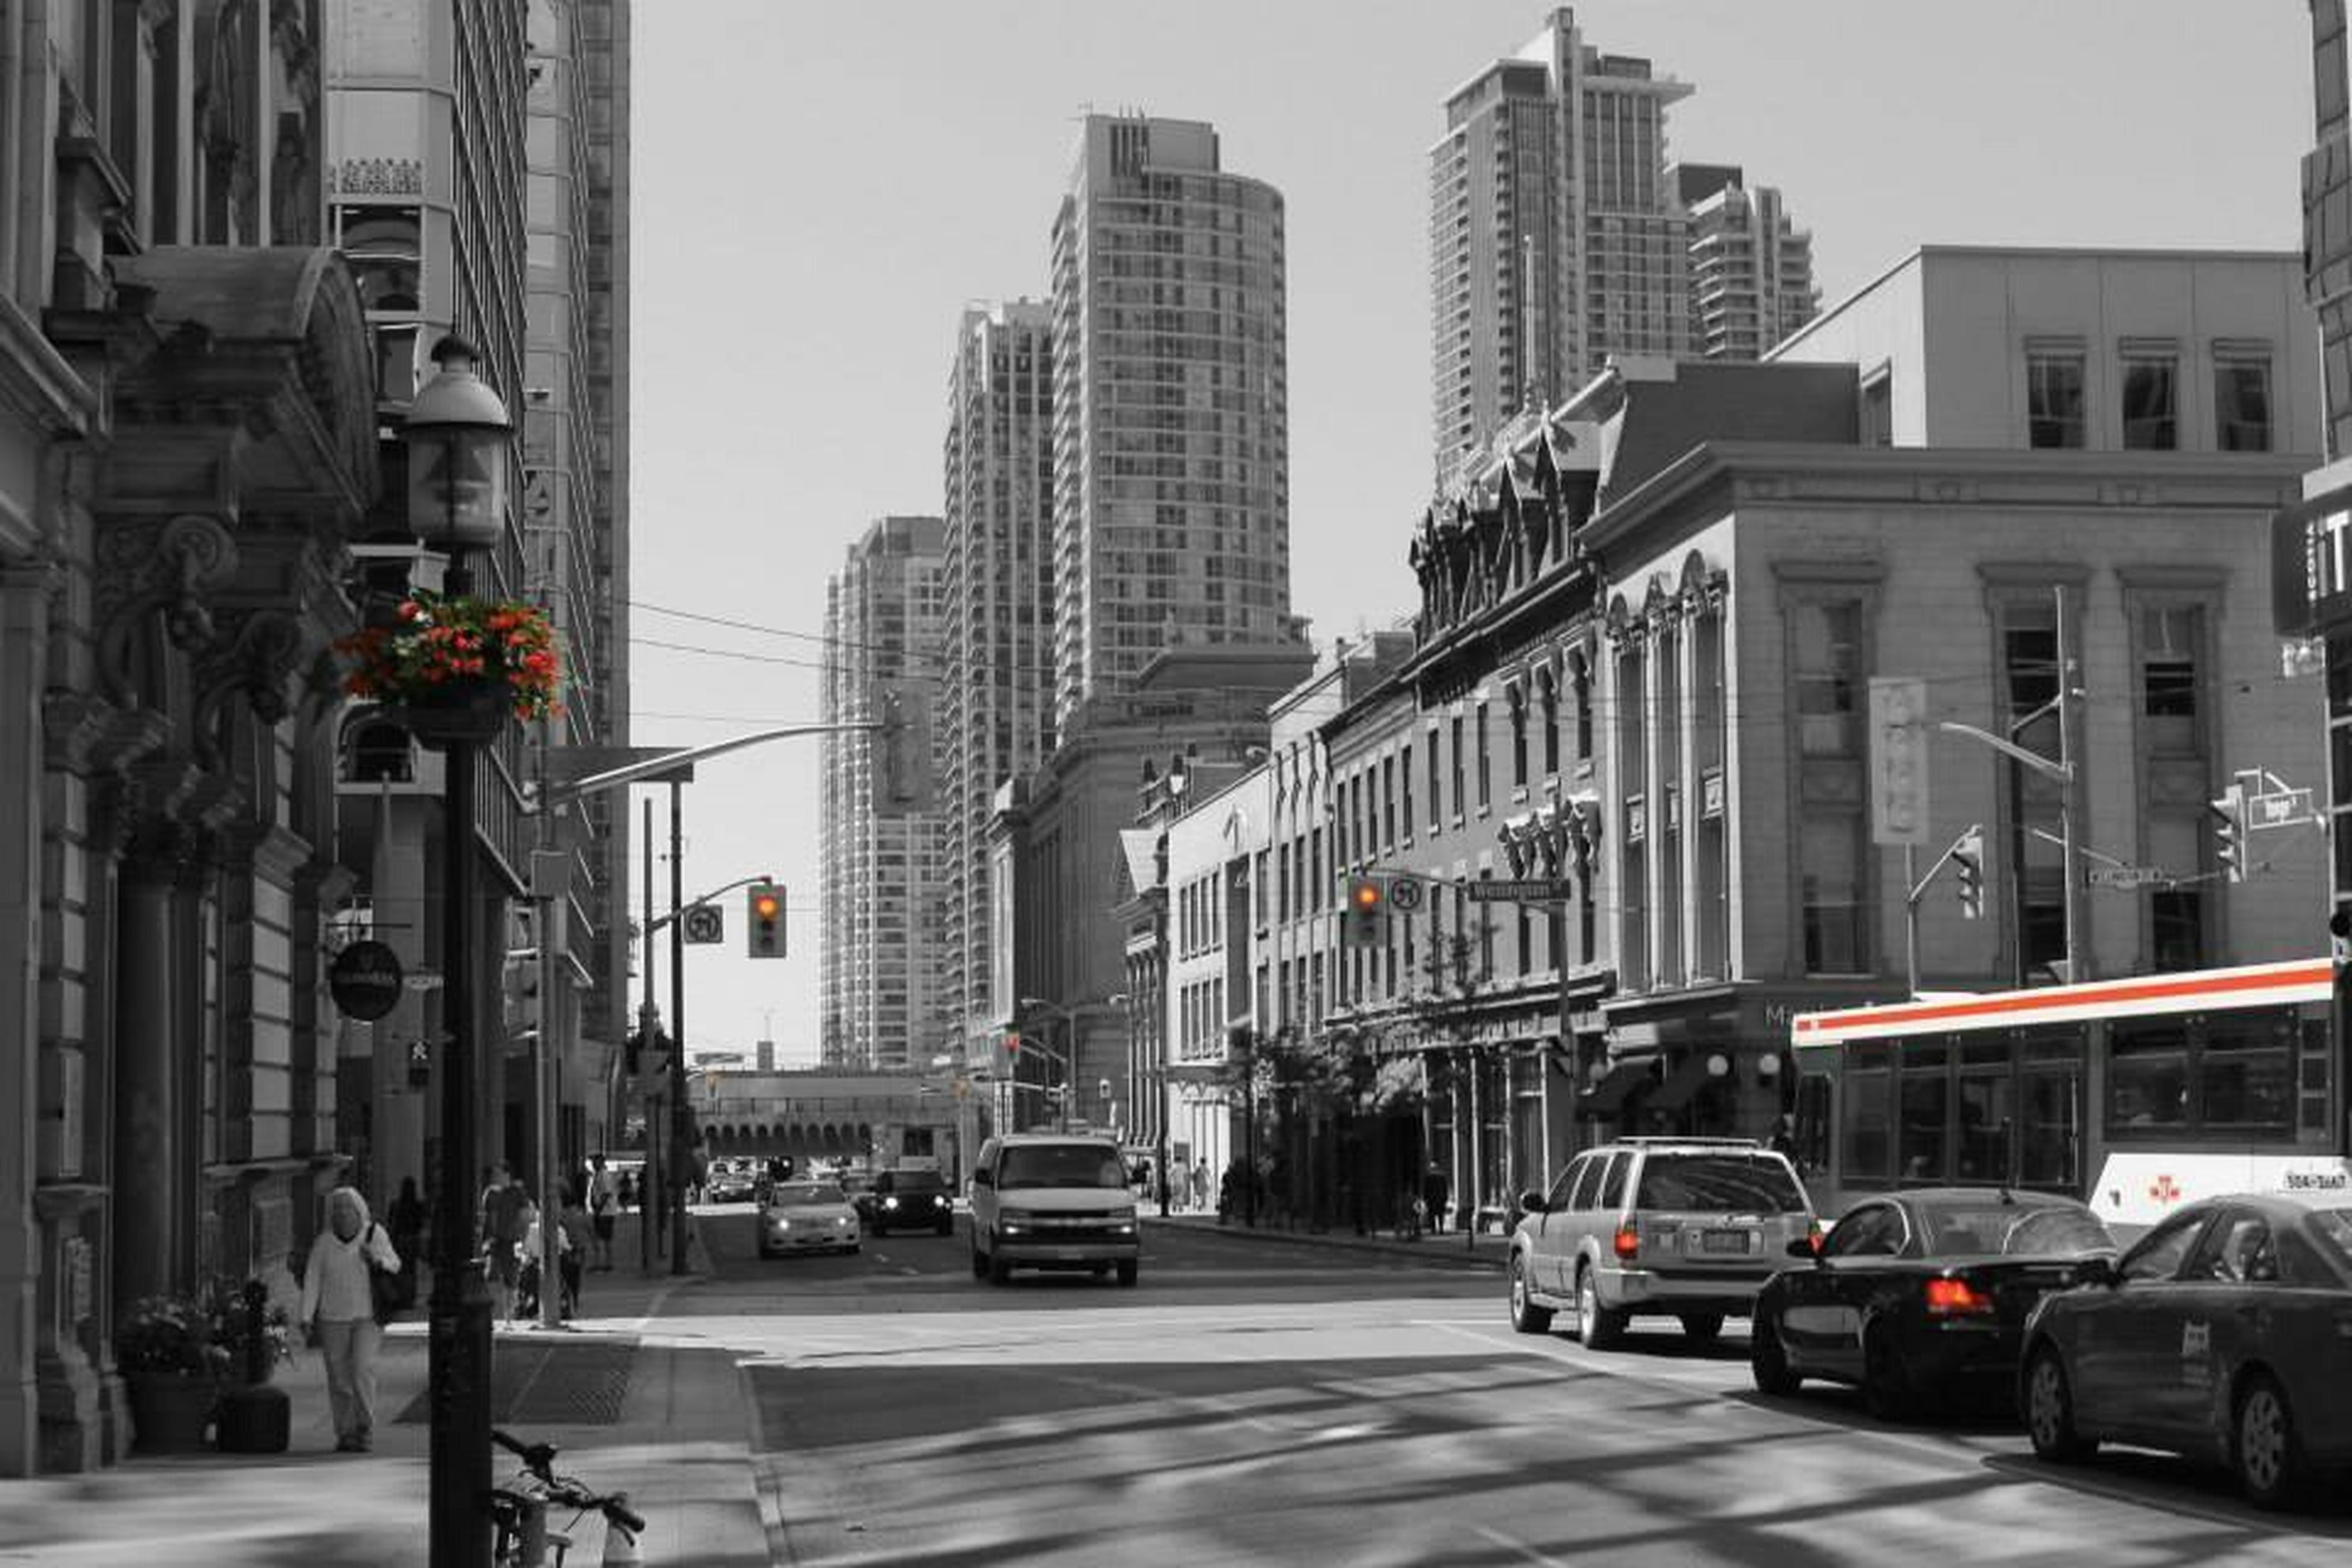 building exterior, car, architecture, transportation, land vehicle, built structure, street, city, mode of transport, road, city life, city street, traffic, incidental people, building, on the move, road marking, vehicle, the way forward, day